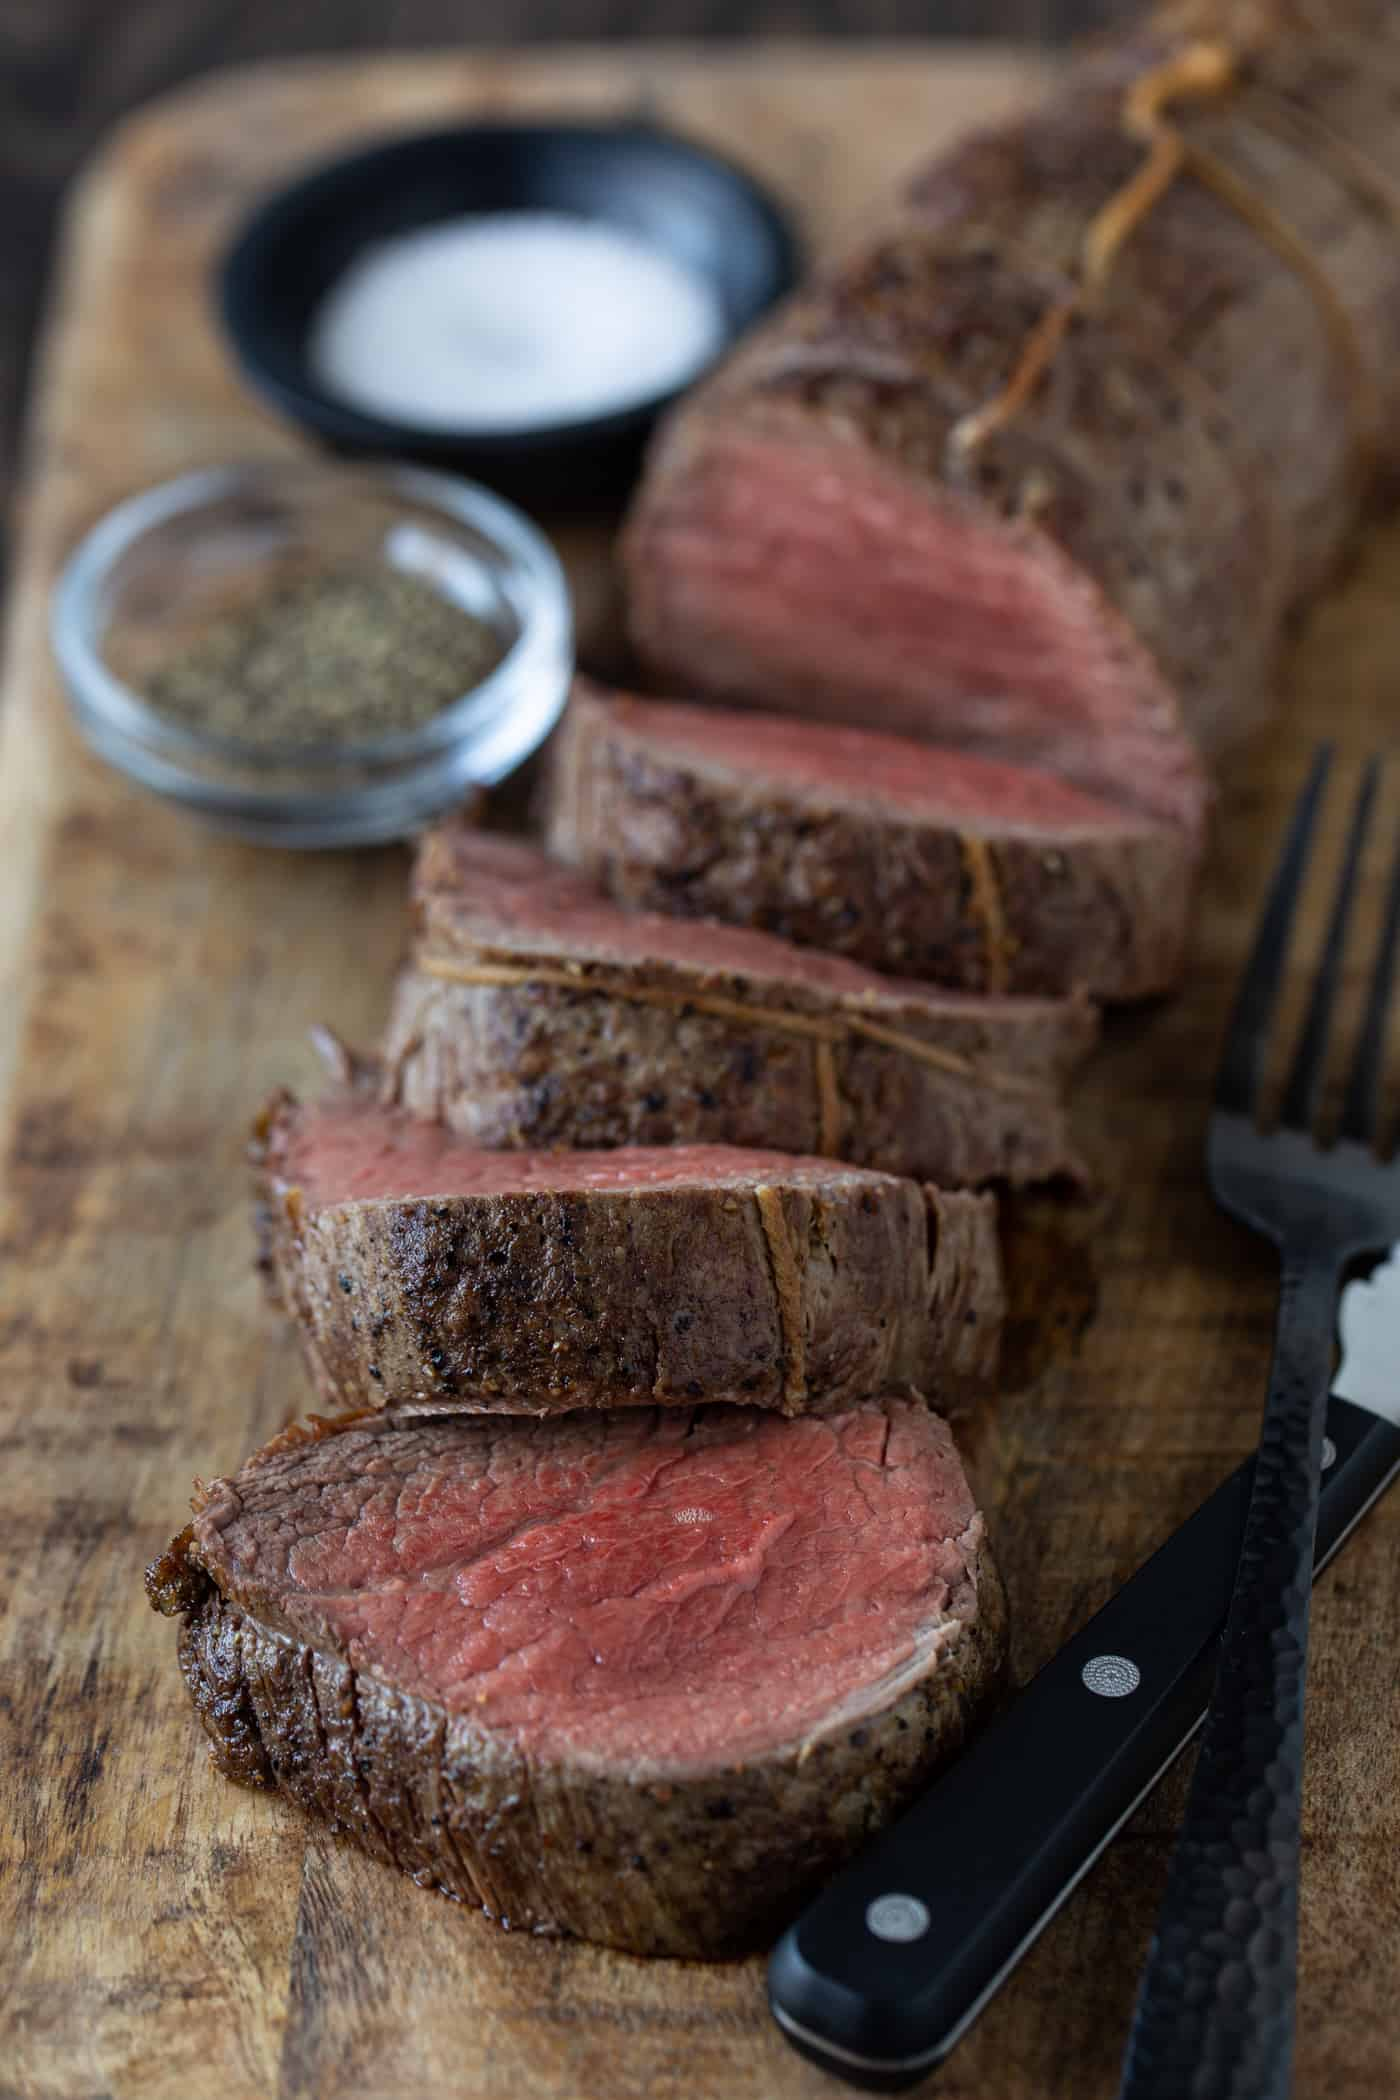 Sliced beef beef tenderloin on cutting board with steak knife and fork.